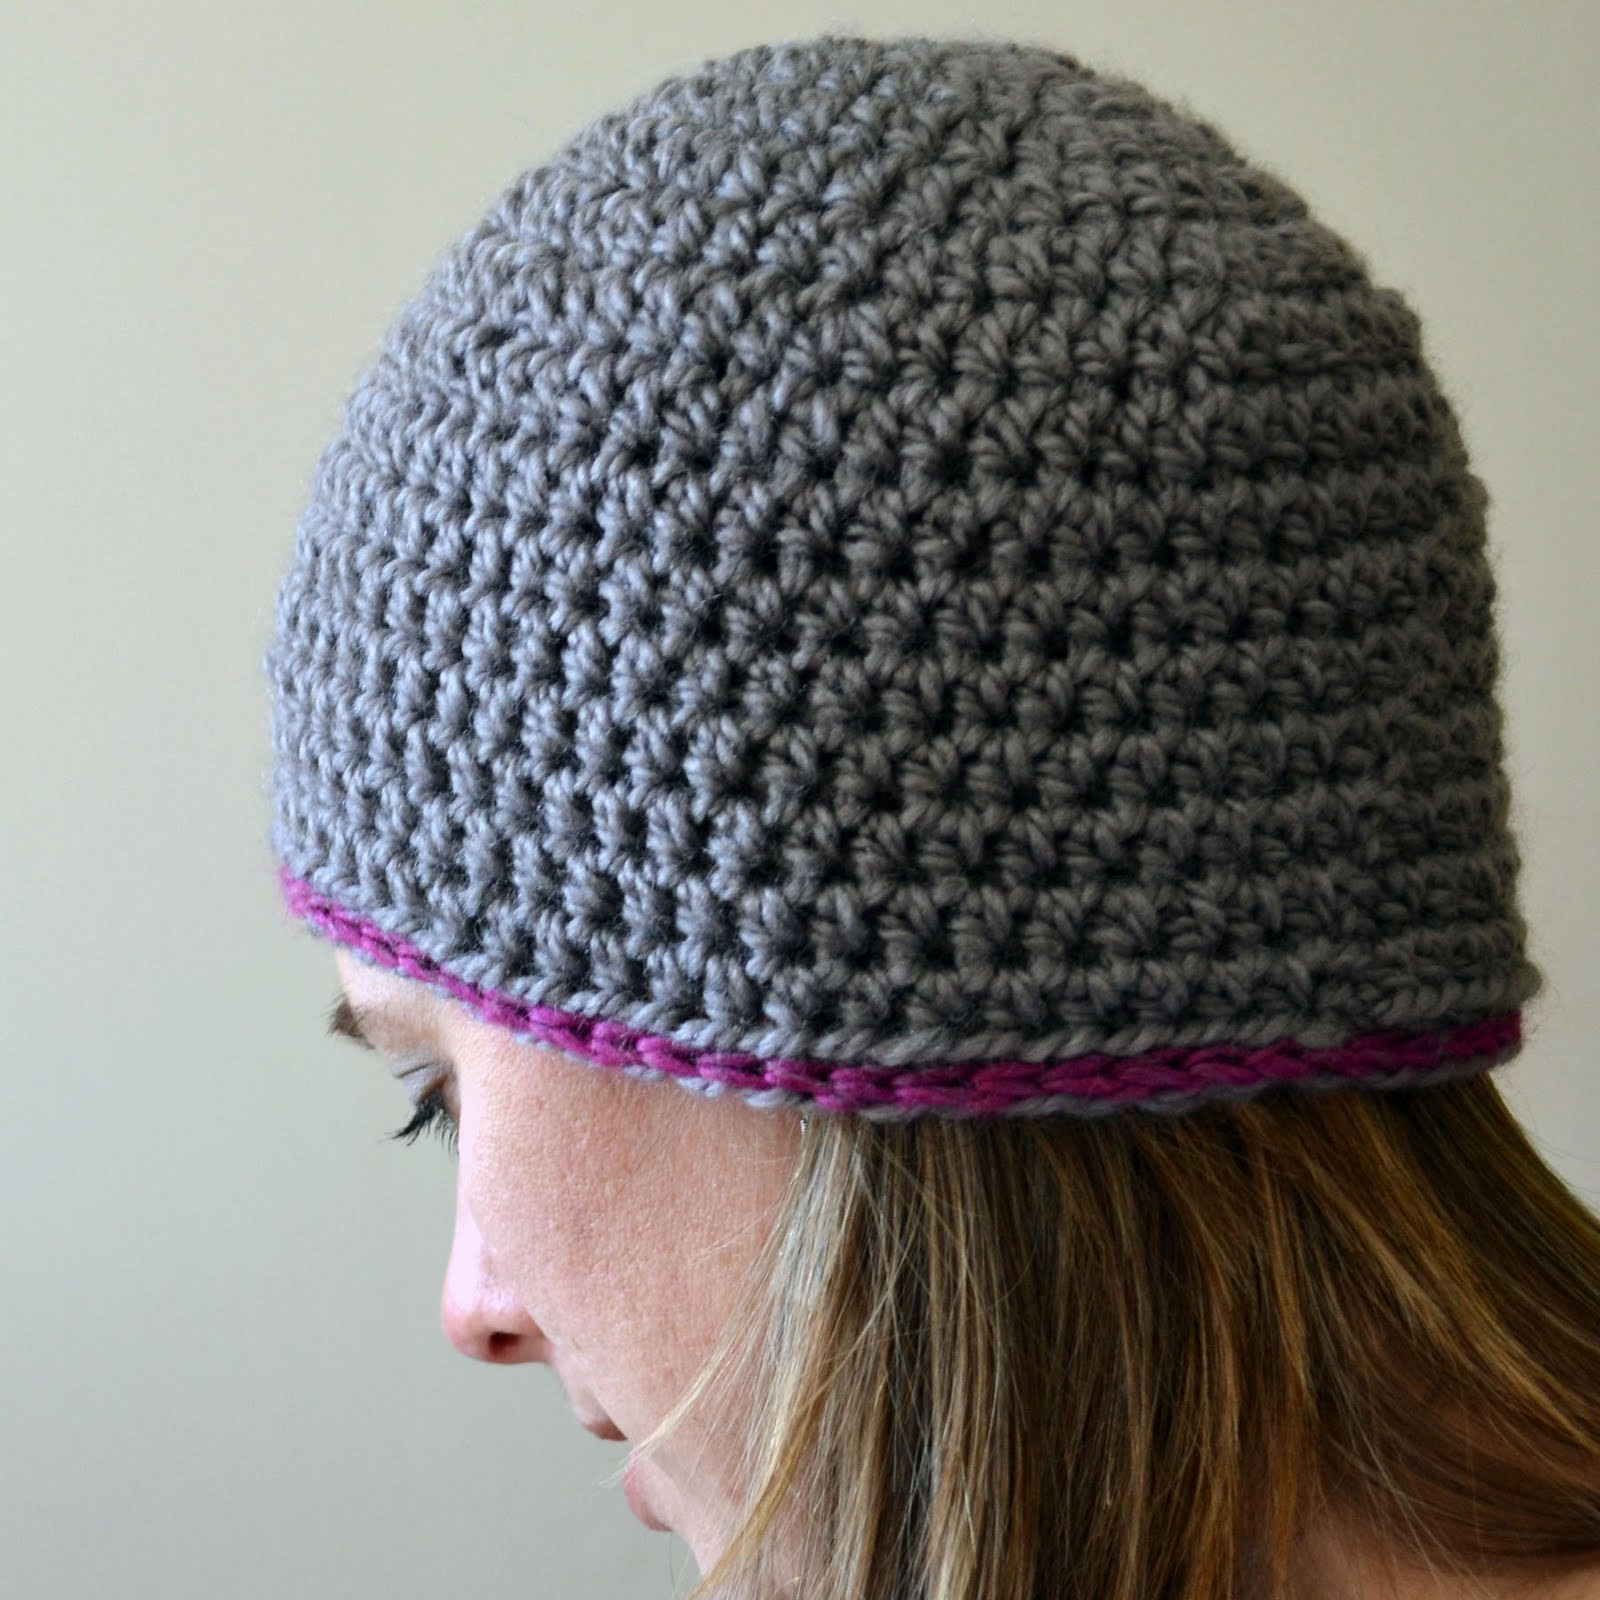 crochet patterns for hats free easy